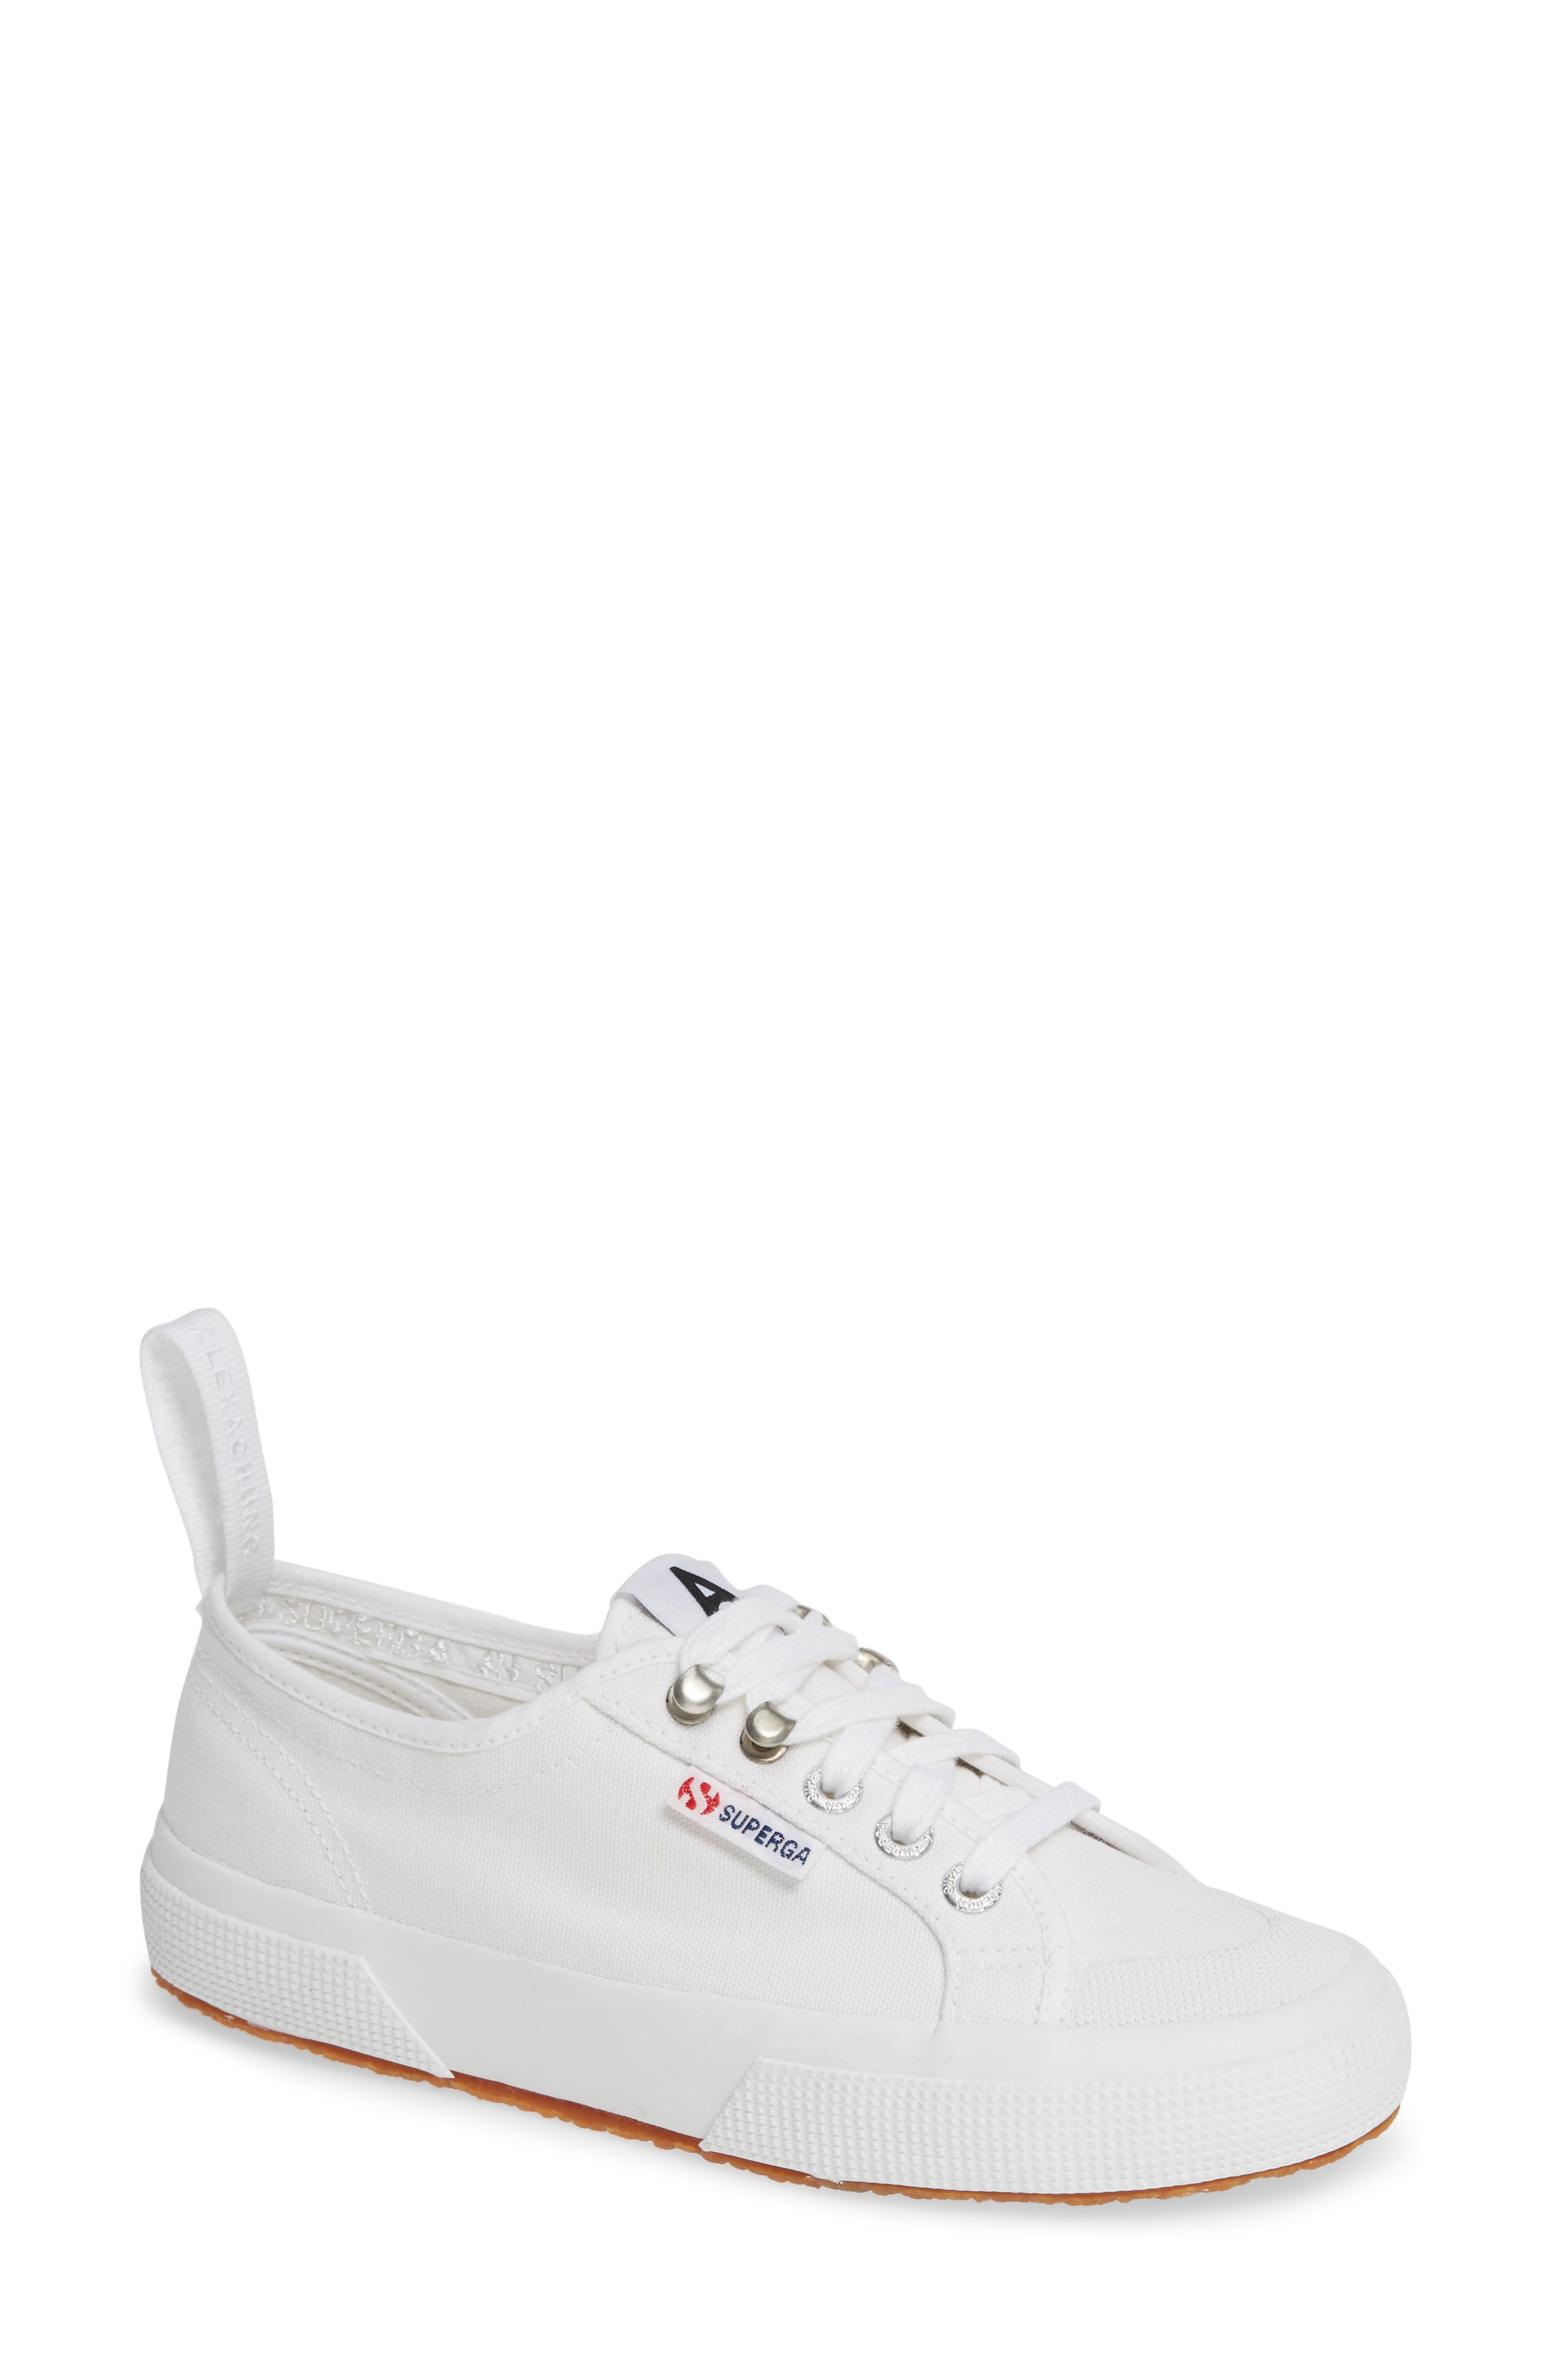 x Alexa Chung 2294 Cothookw Low Top Sneaker,                             Main thumbnail 1, color,                             WHITE